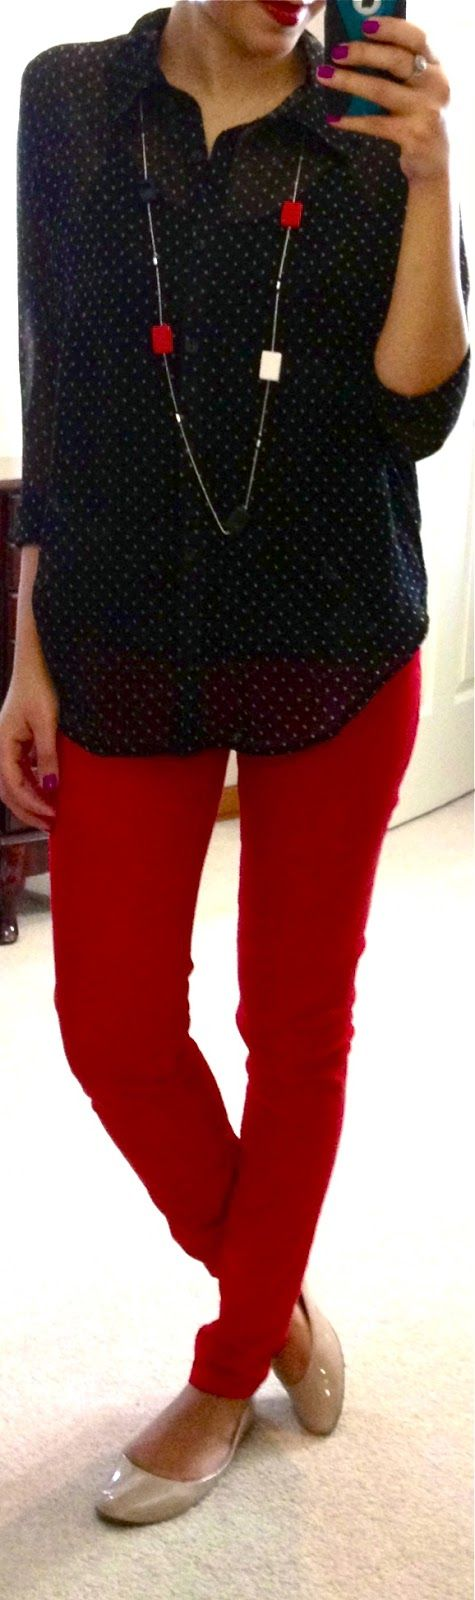 red skinnies + nude flats